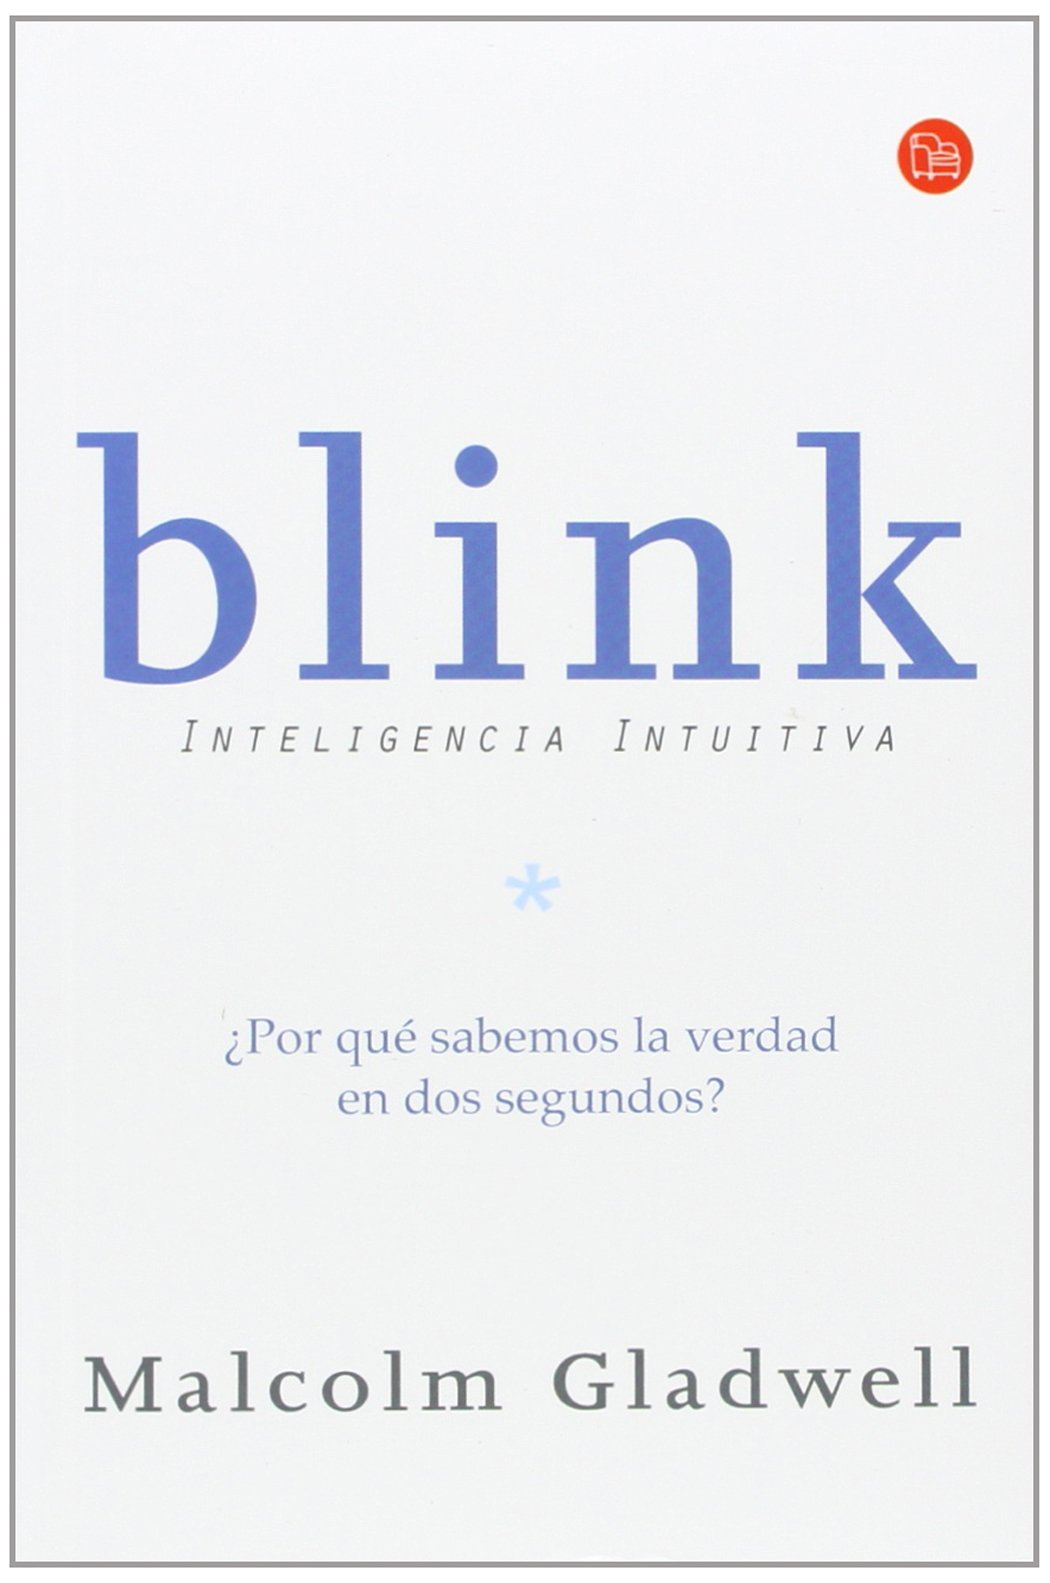 Blink malcolm gladwell incomplete idea